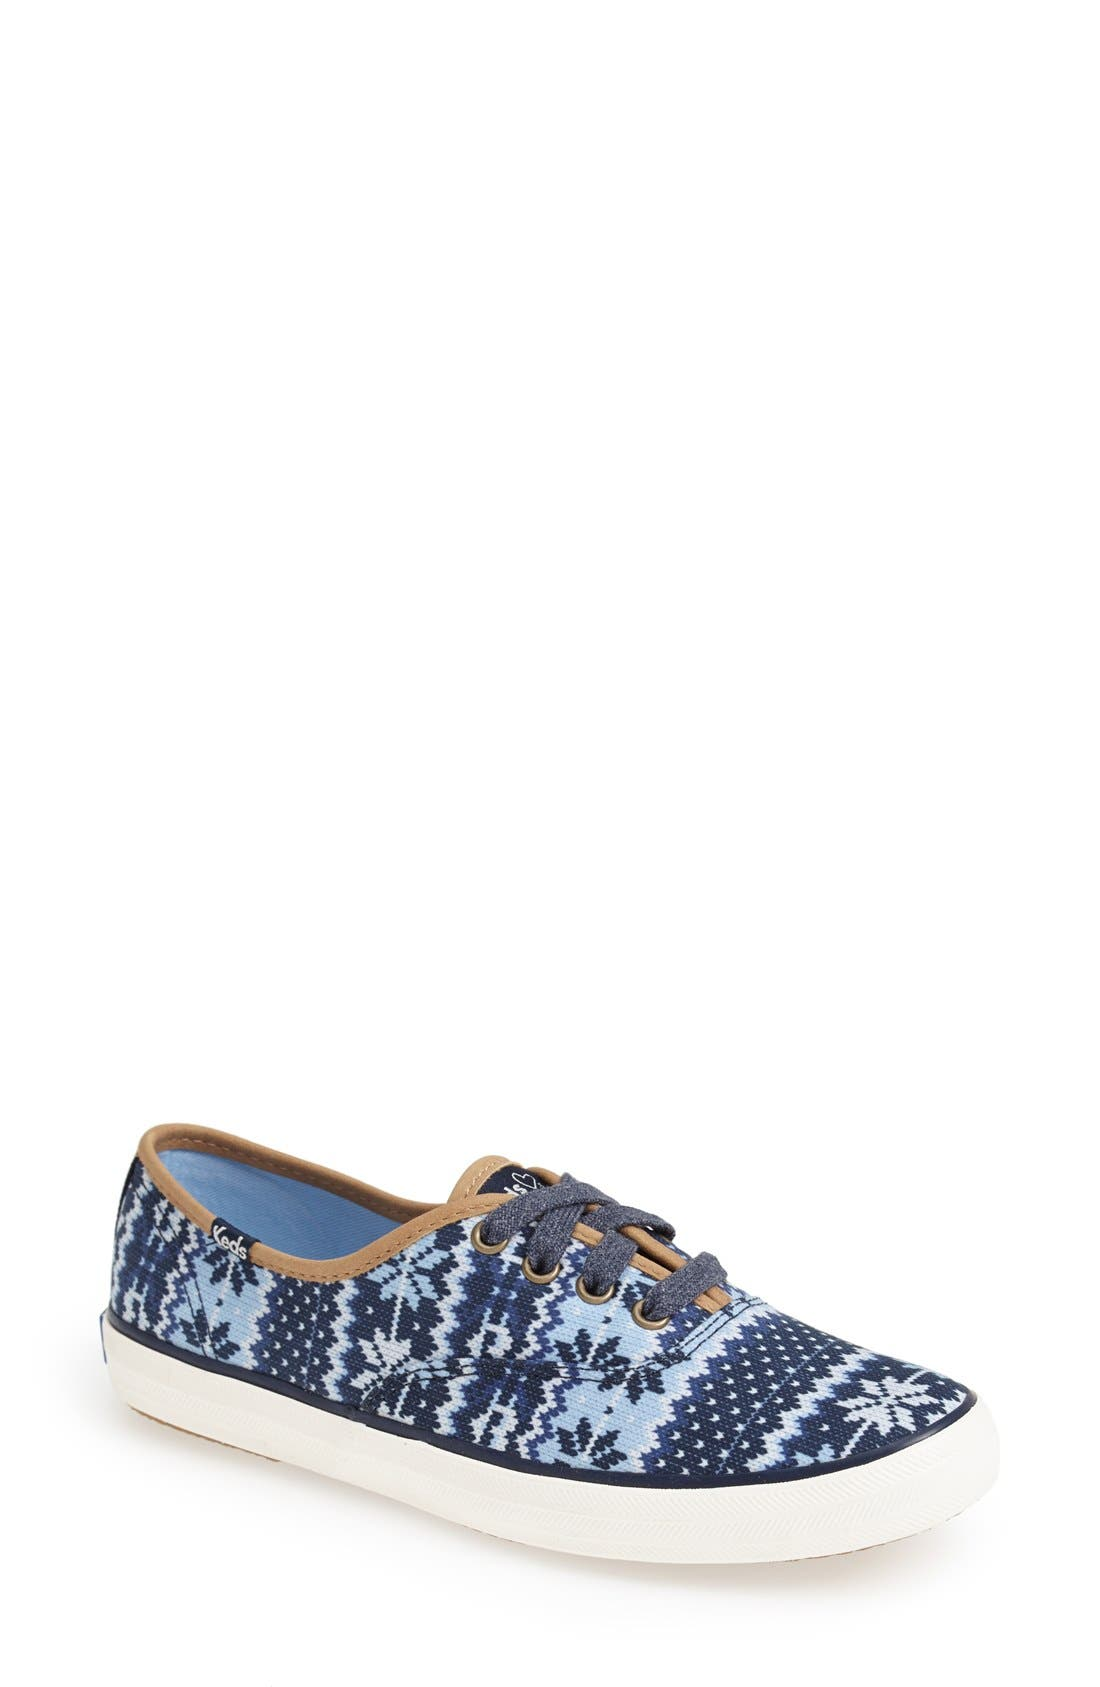 Alternate Image 1 Selected - Keds® Taylor Swift 'Champion - Fair Isle' Sneaker (Women)